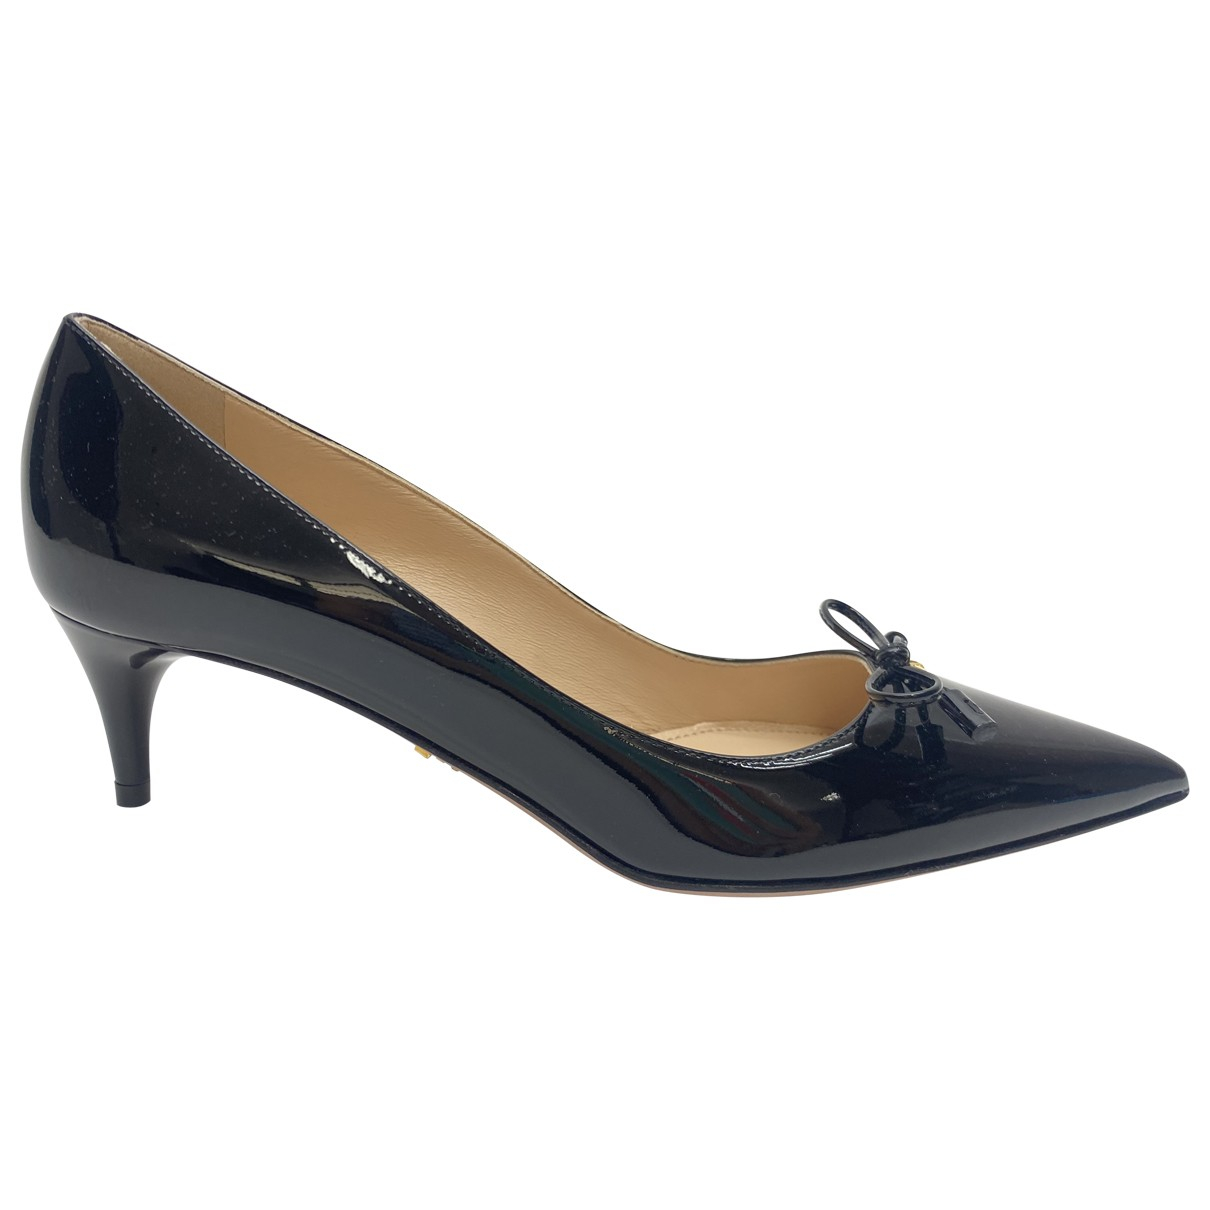 Prada \N Black Patent leather Heels for Women 36.5 IT